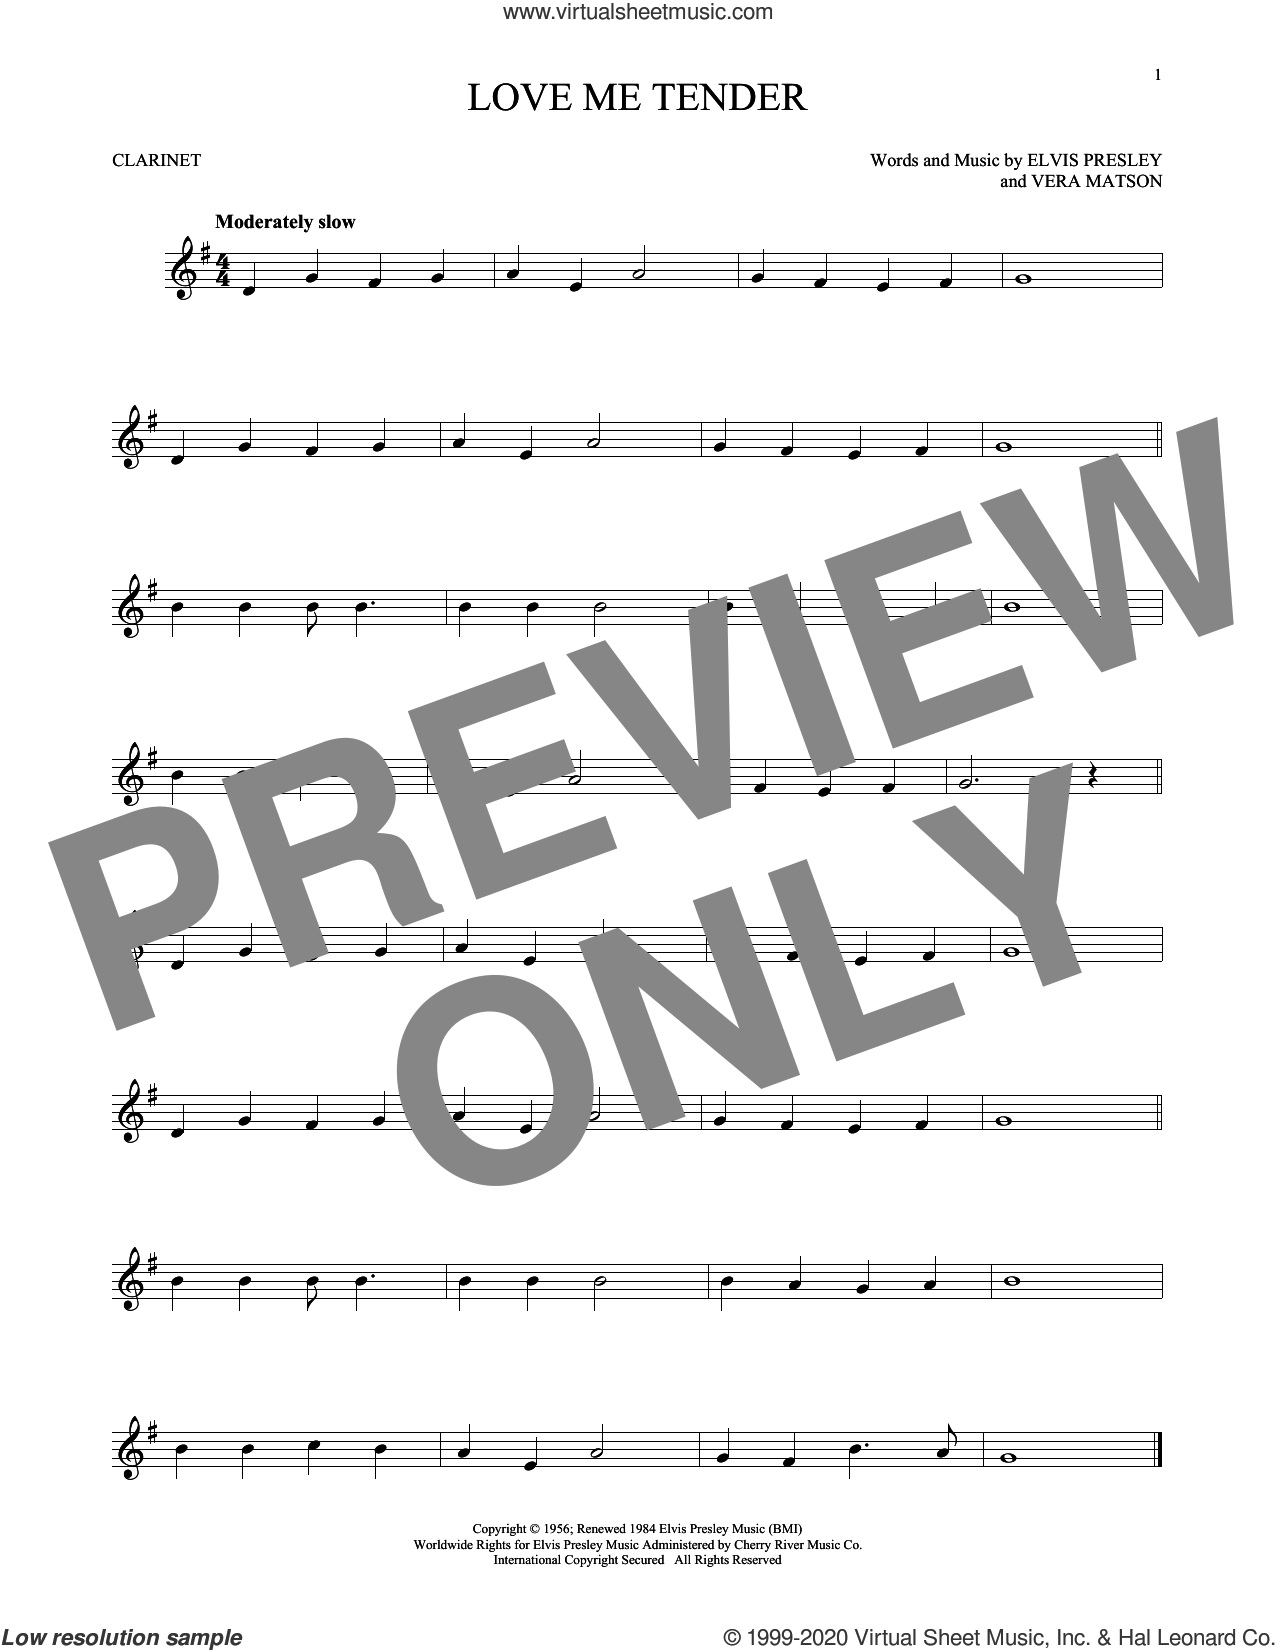 Love Me Tender sheet music for clarinet solo by Elvis Presley and Vera Matson, intermediate skill level